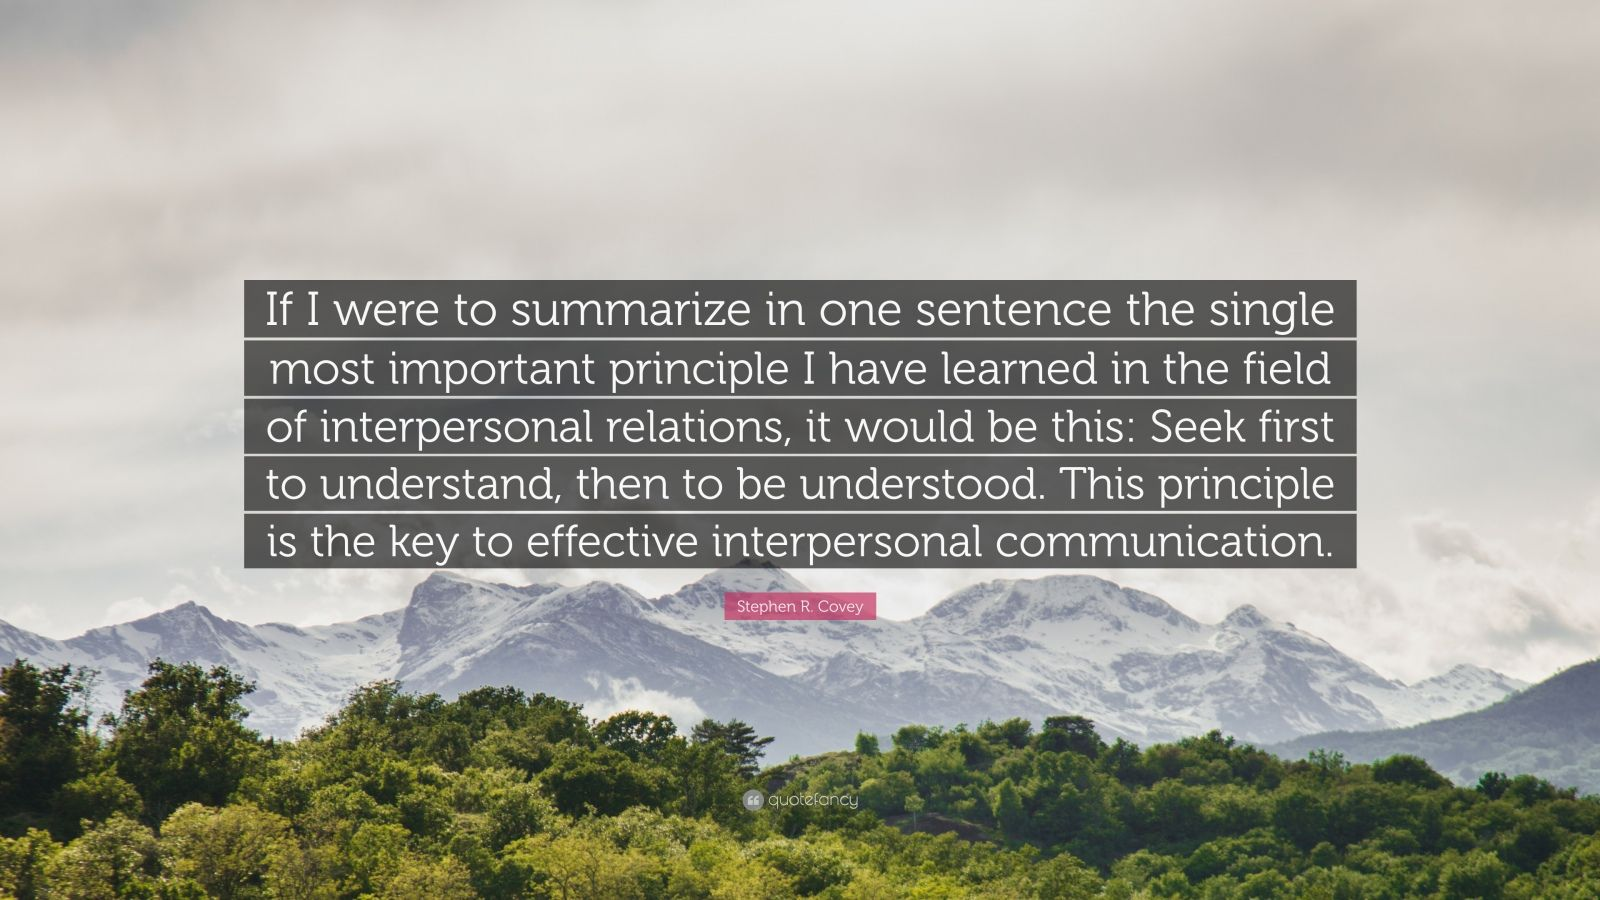 "Stephen R. Covey Quote: ""If I were to summarize in one sentence the single most important principle I have learned in the field of interpersonal relations, it would be this: Seek first to understand, then to be understood. This principle is the key to effective interpersonal communication."""